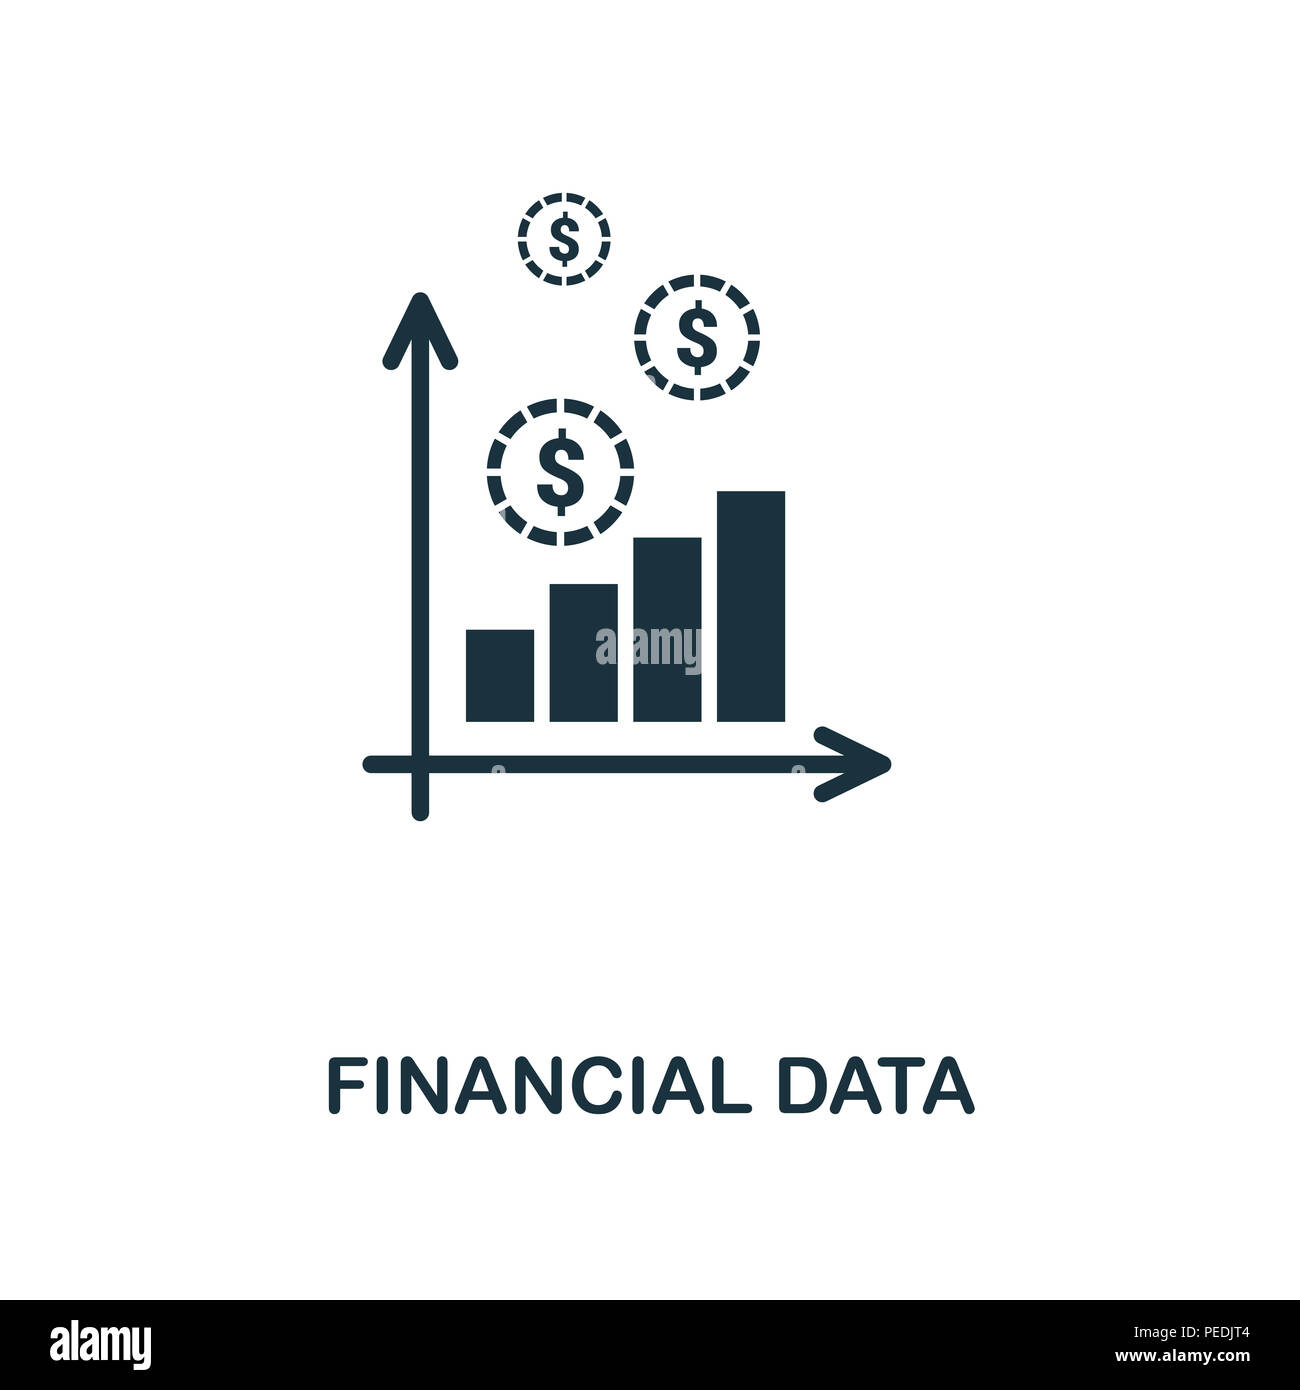 financial data creative icon simple element illustration financial